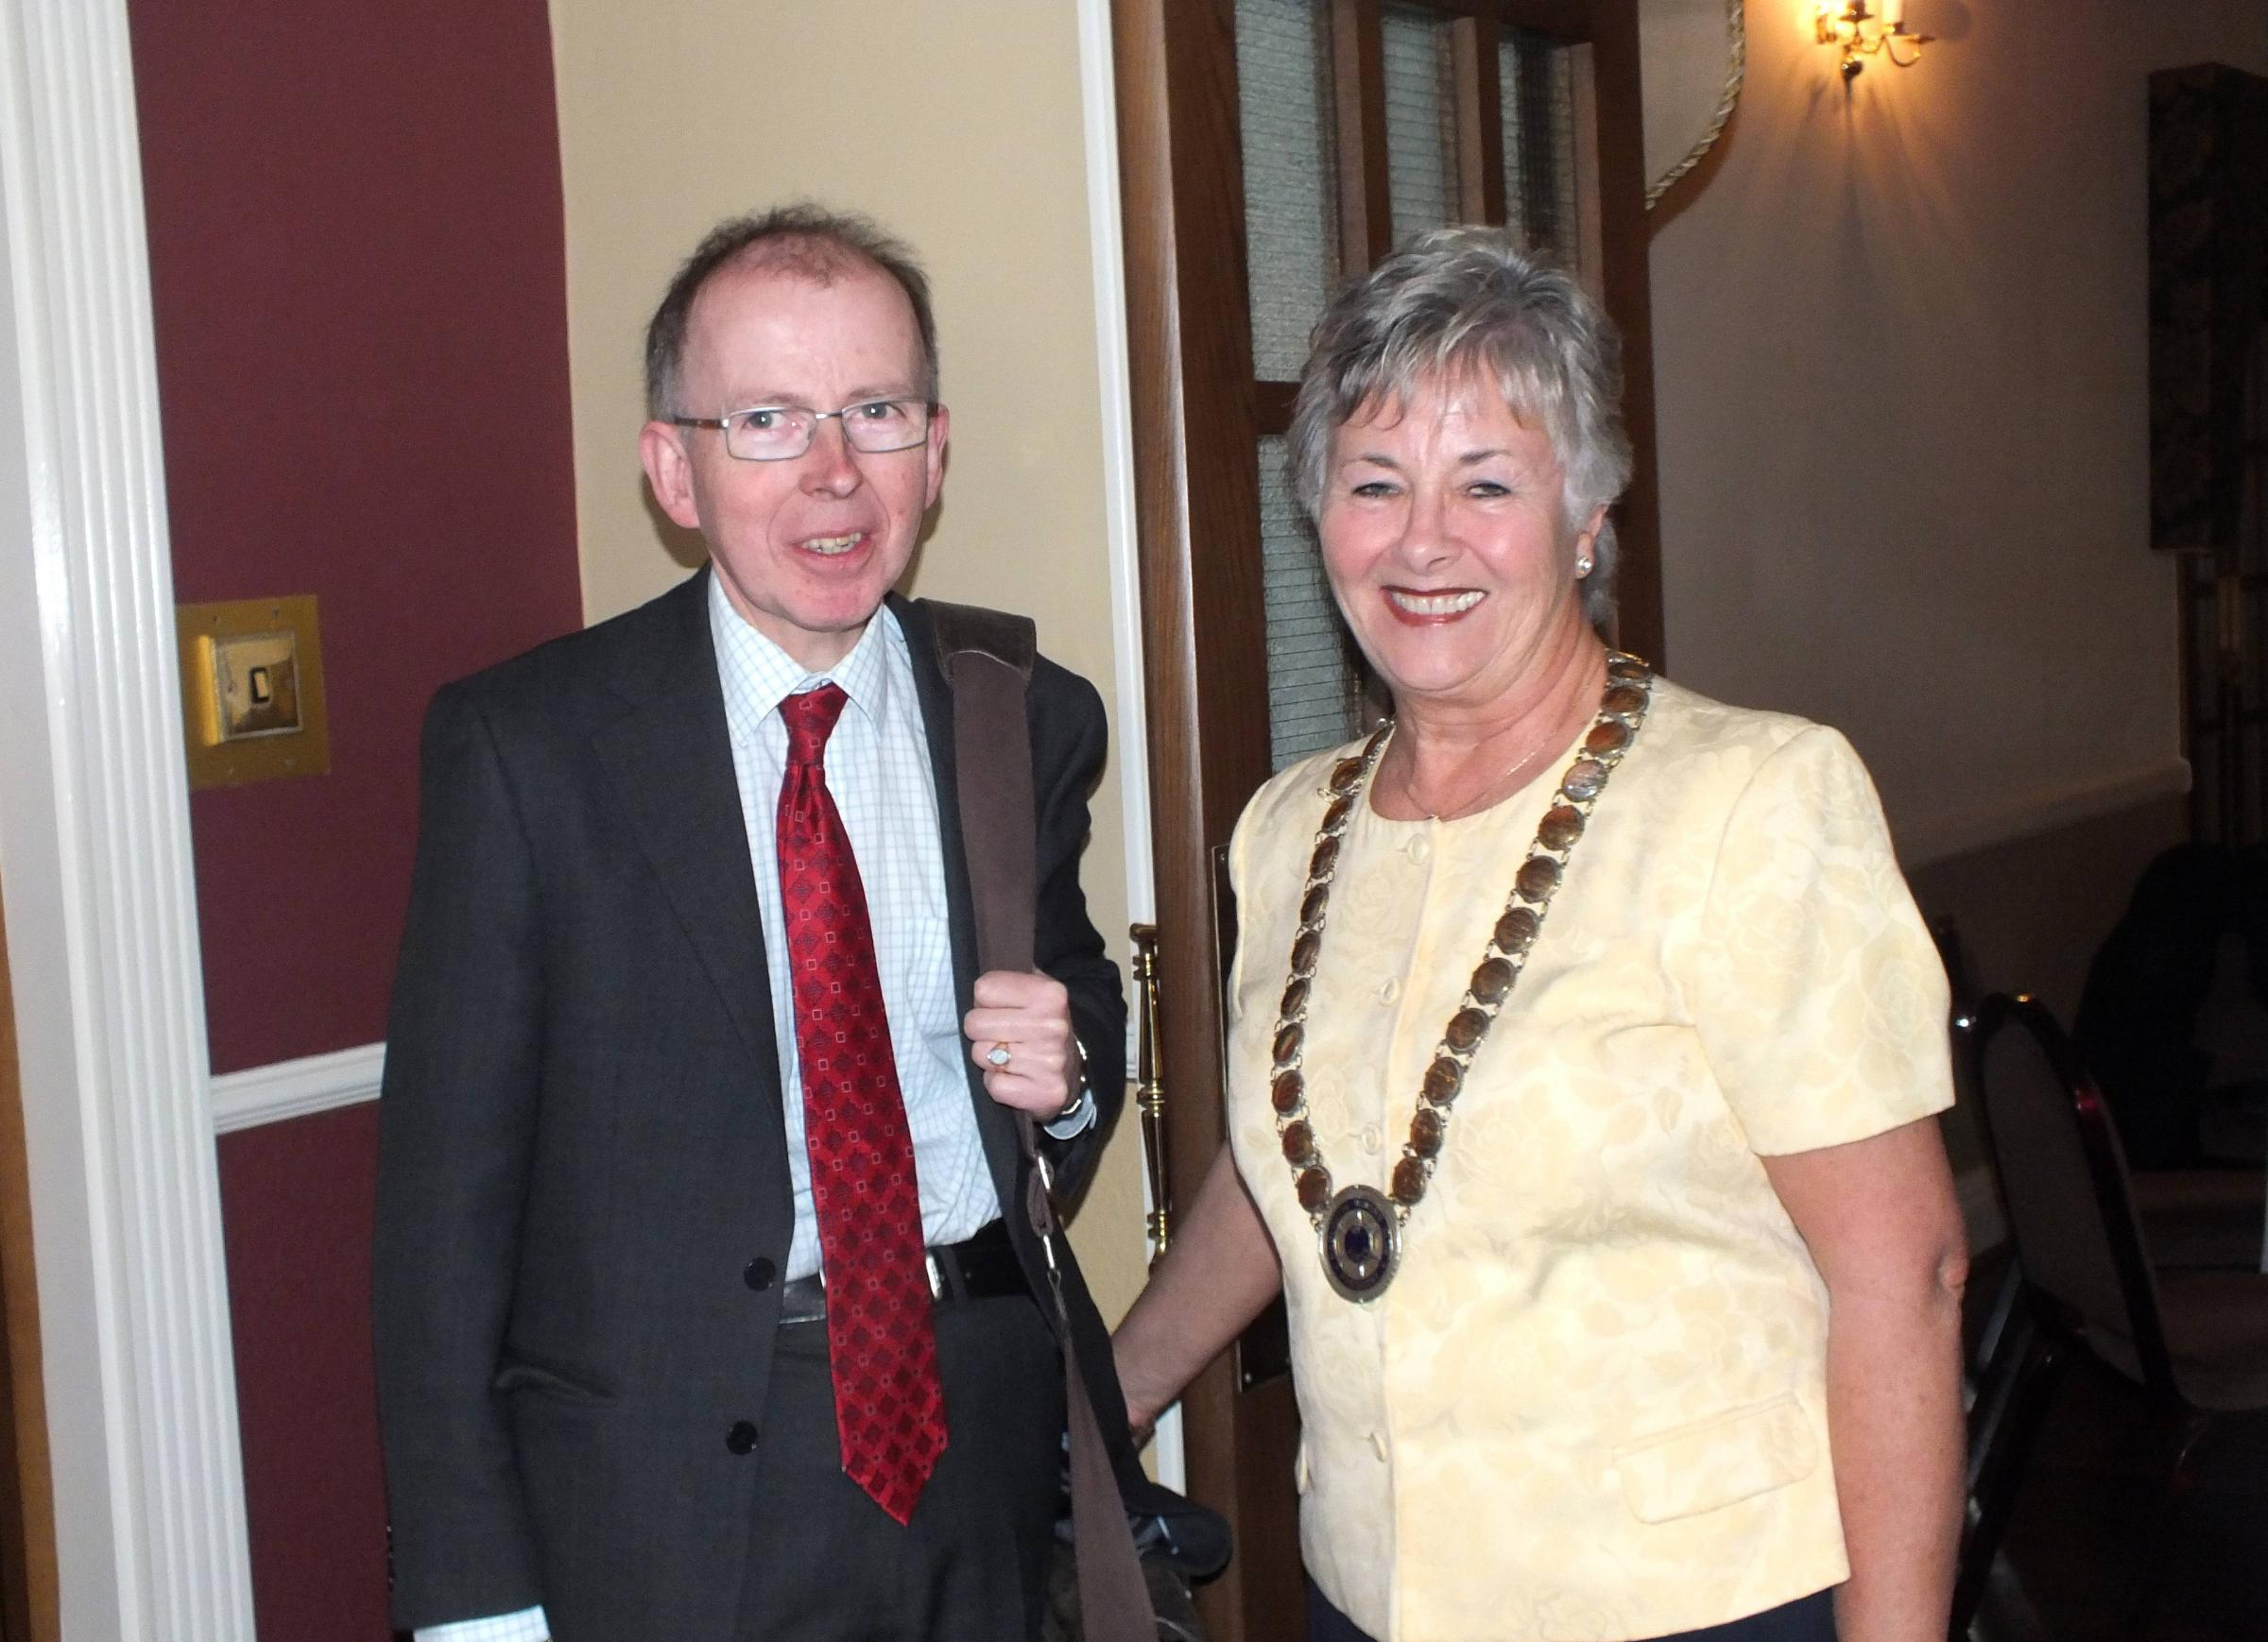 Gemologist Robert Bolton with the Club President, Ann Williams